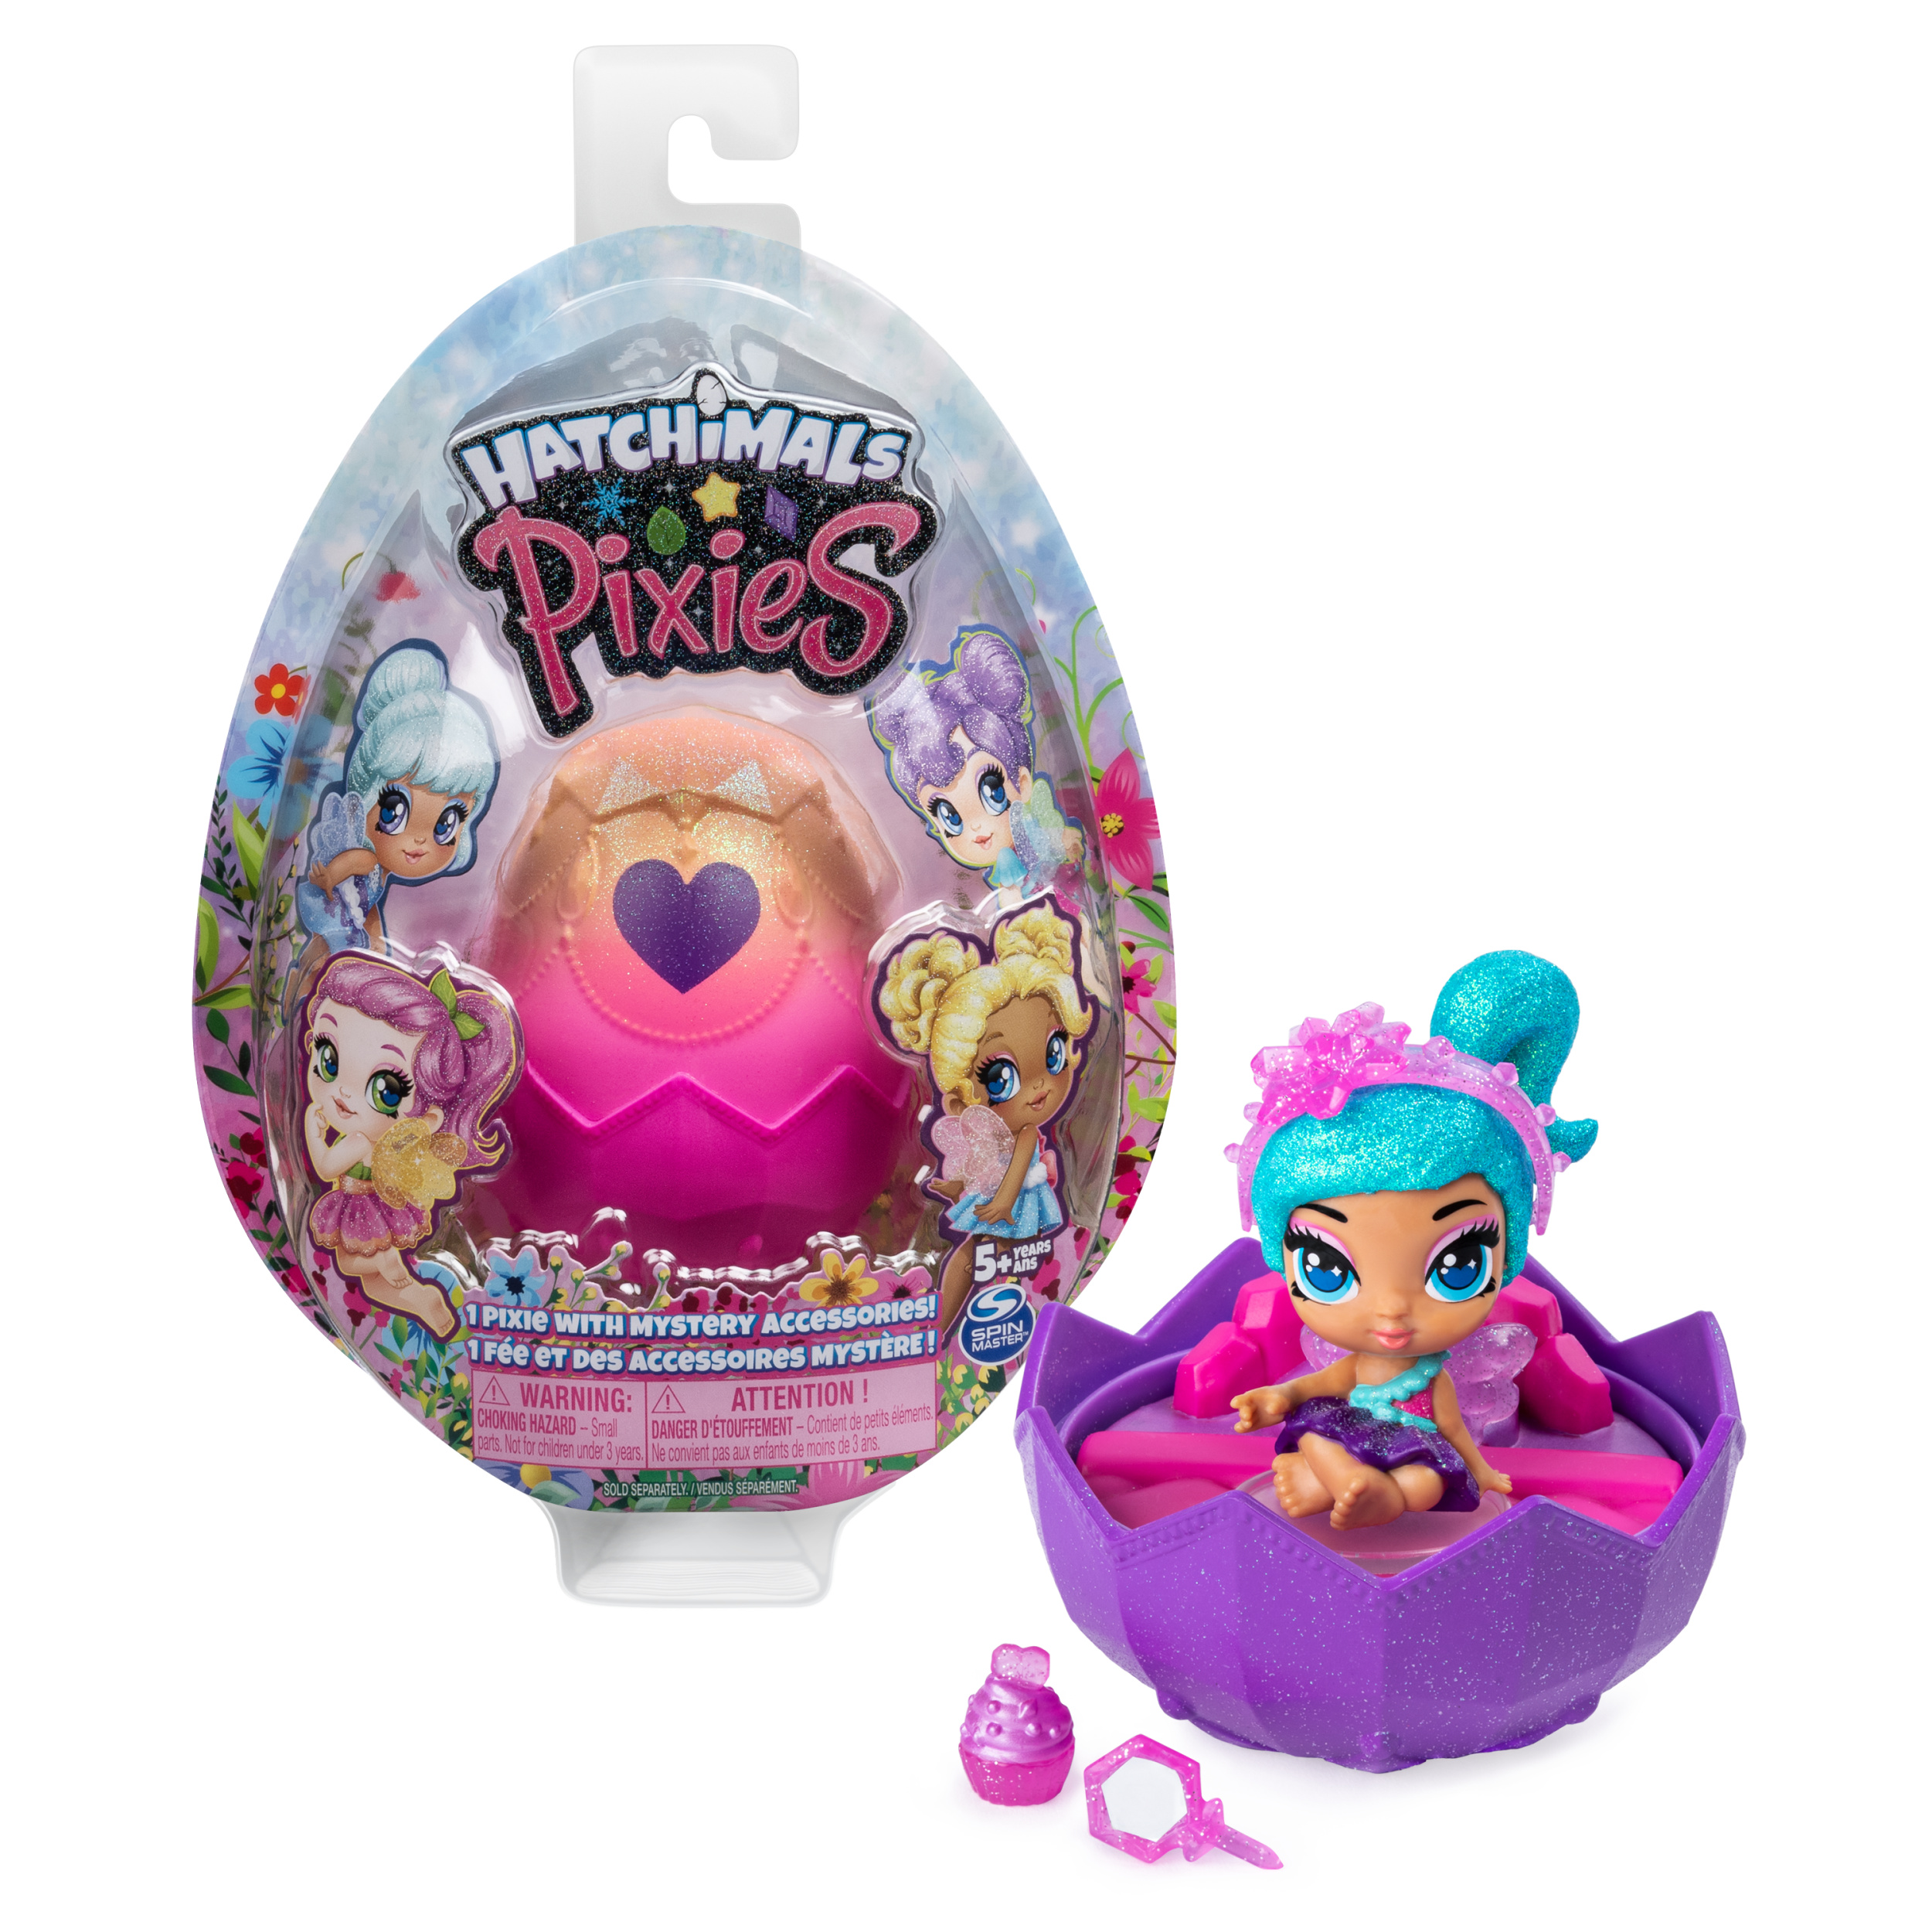 Hatchimals Pixies, 2.5-Inch Collectible Doll and Accessories (Styles May Vary), for Kids Aged 5 and Up (Walmart)